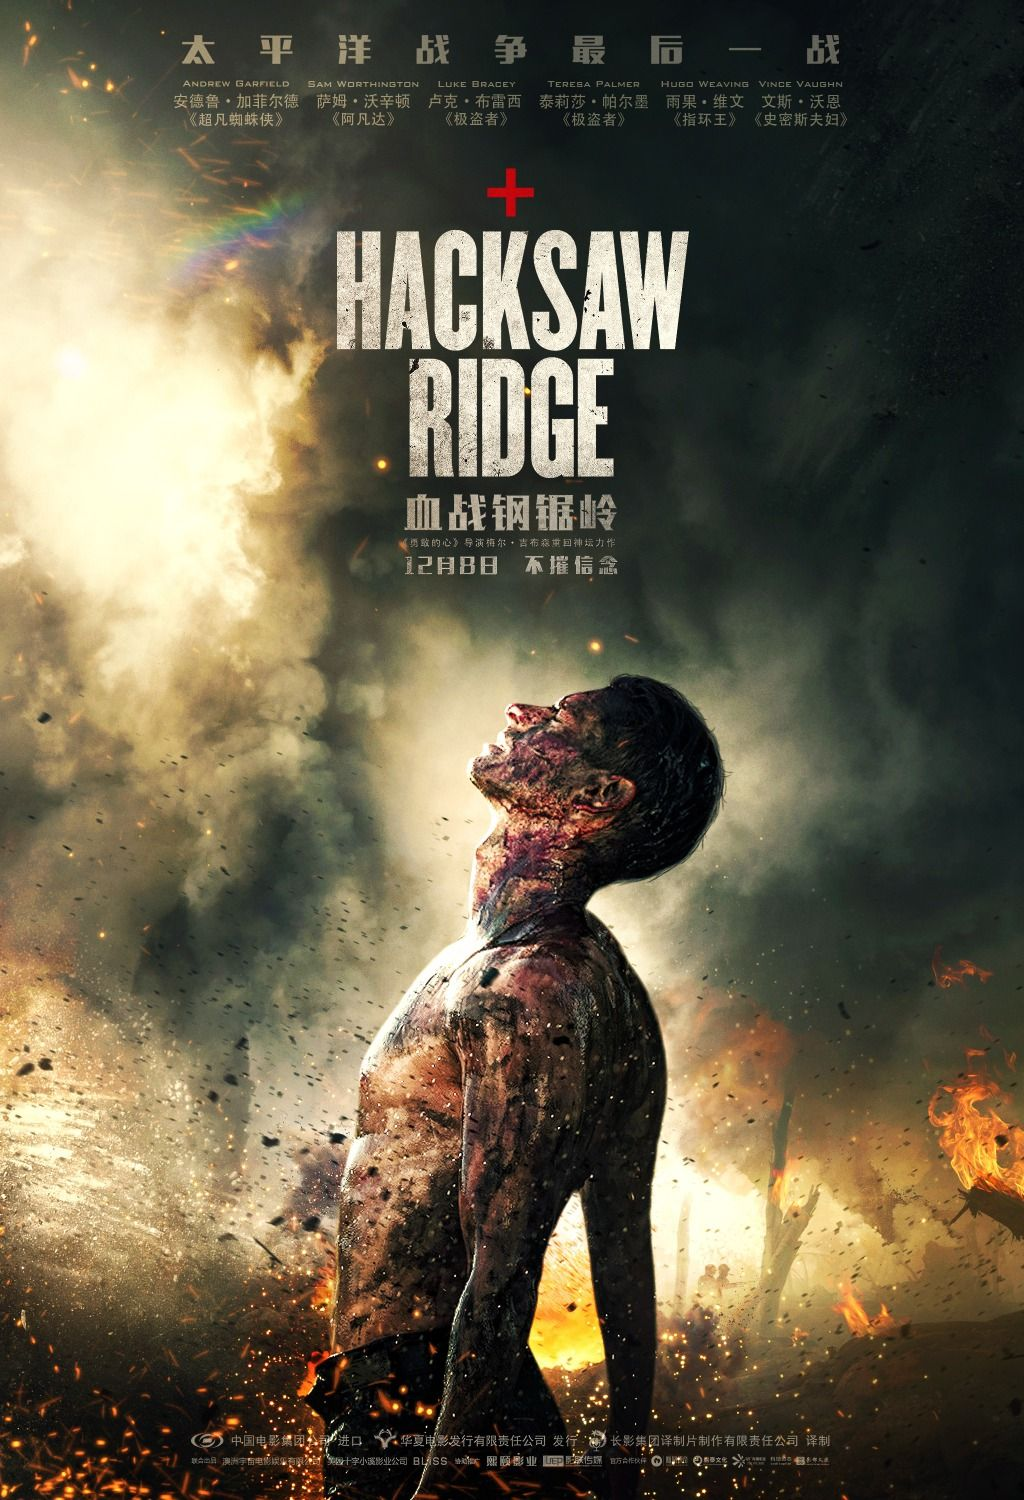 Return To The Main Poster Page For Hacksaw Ridge 7 Of 19 Hacksaw Ridge Movie Posters Hacksaw Ridge Movie